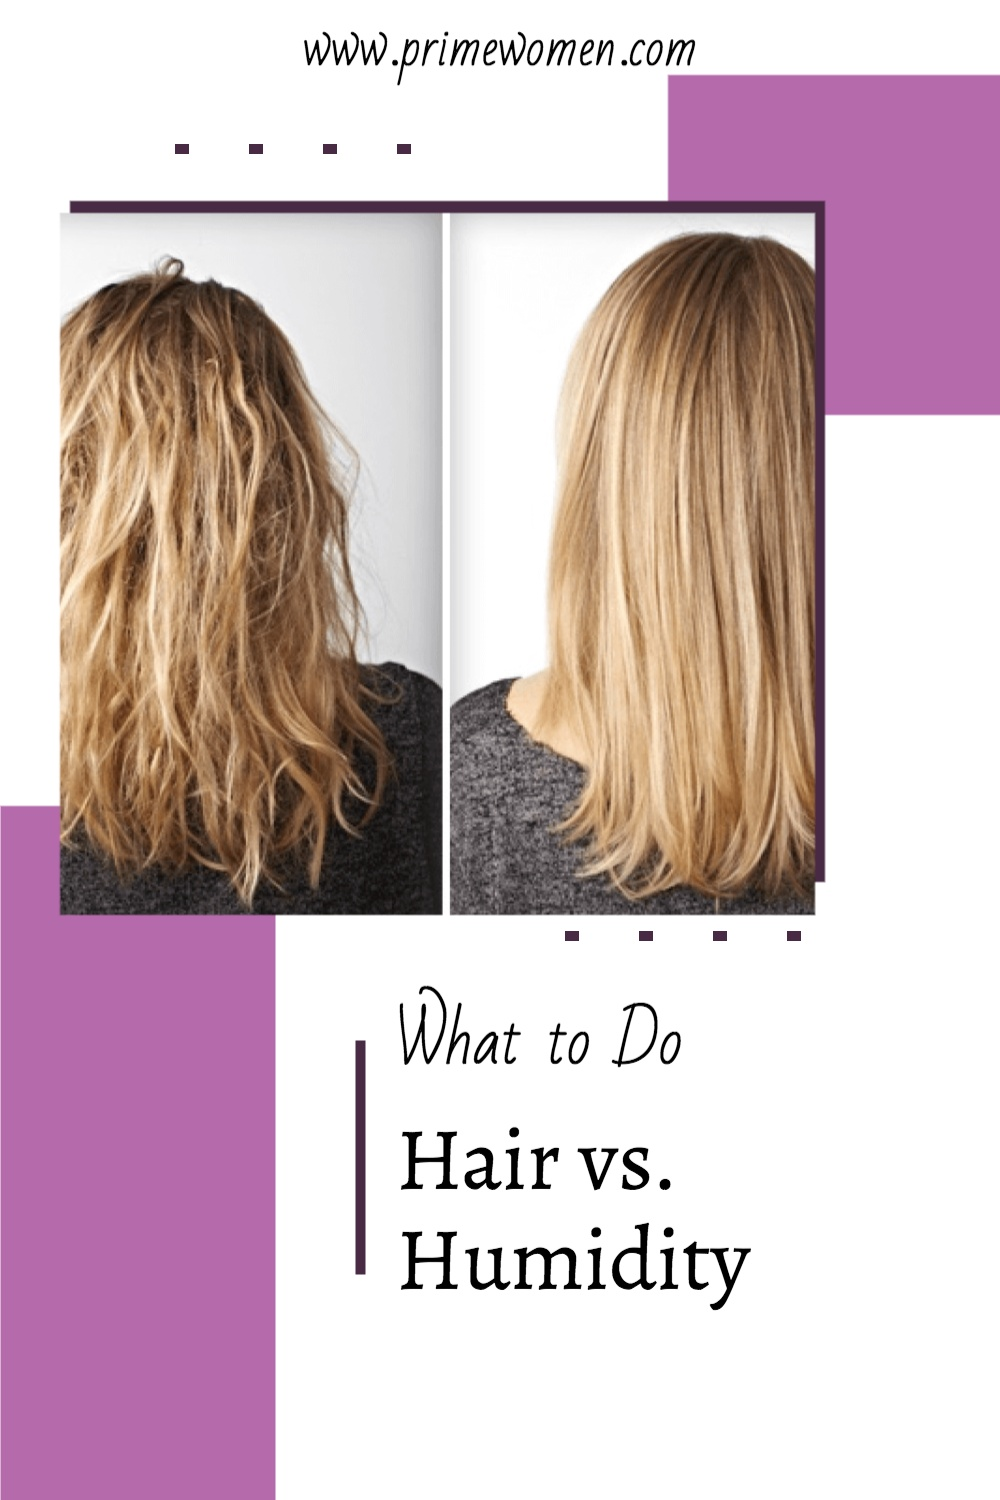 Hair-vs.-Humidity: What to do about it